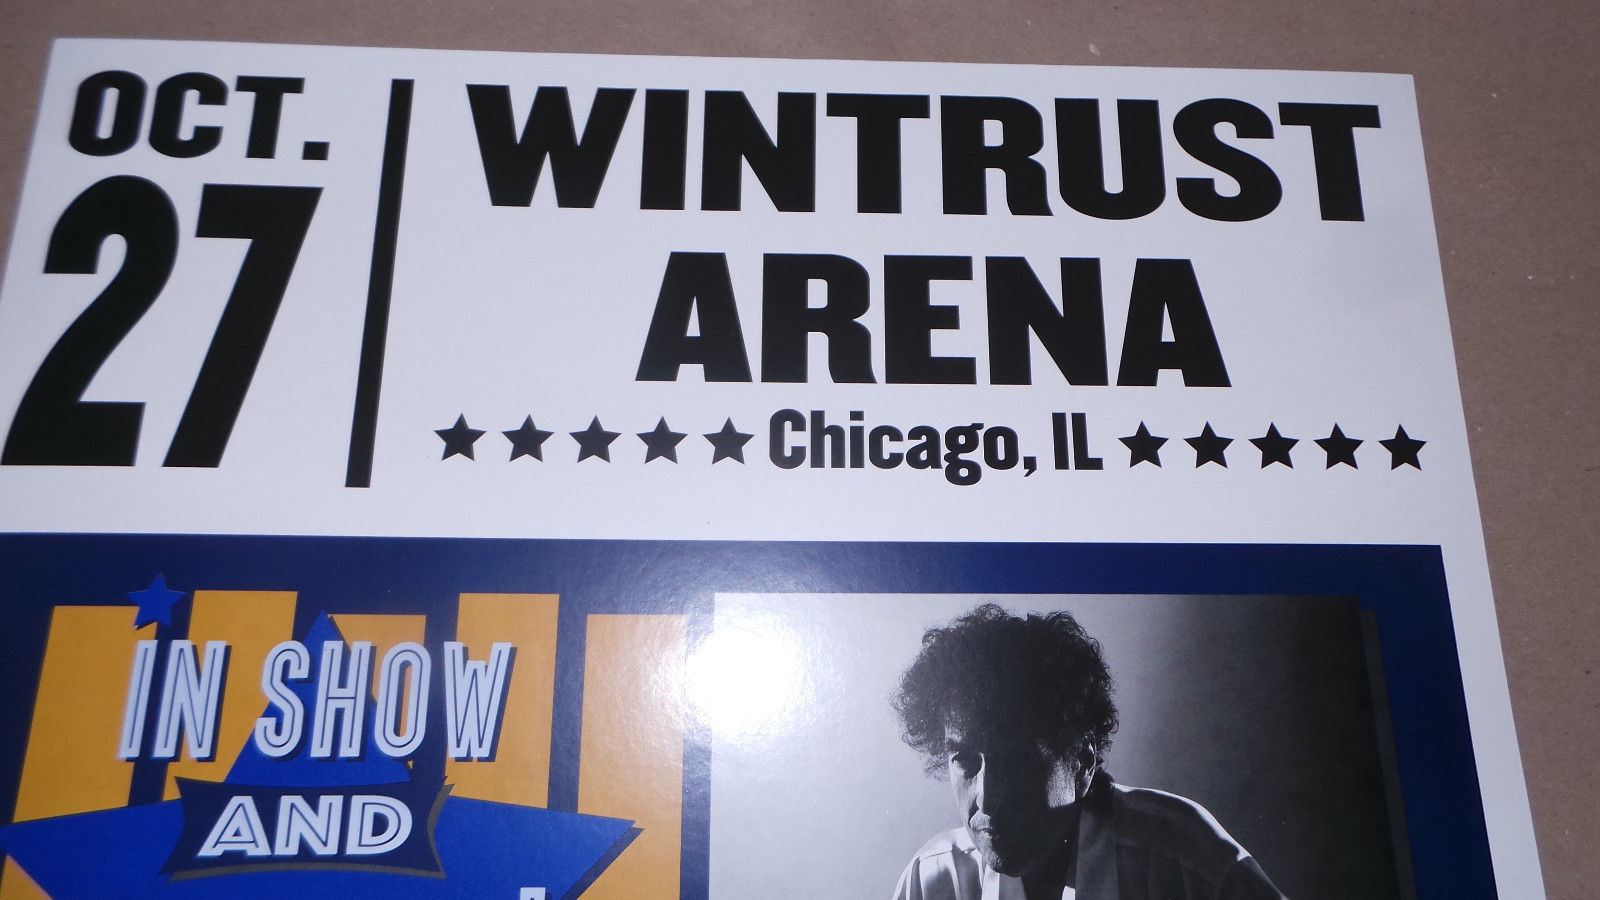 Bob Dylan Wintrust Arena Chicago Illinois 10/27/2017 Show Poster Unsigned No #